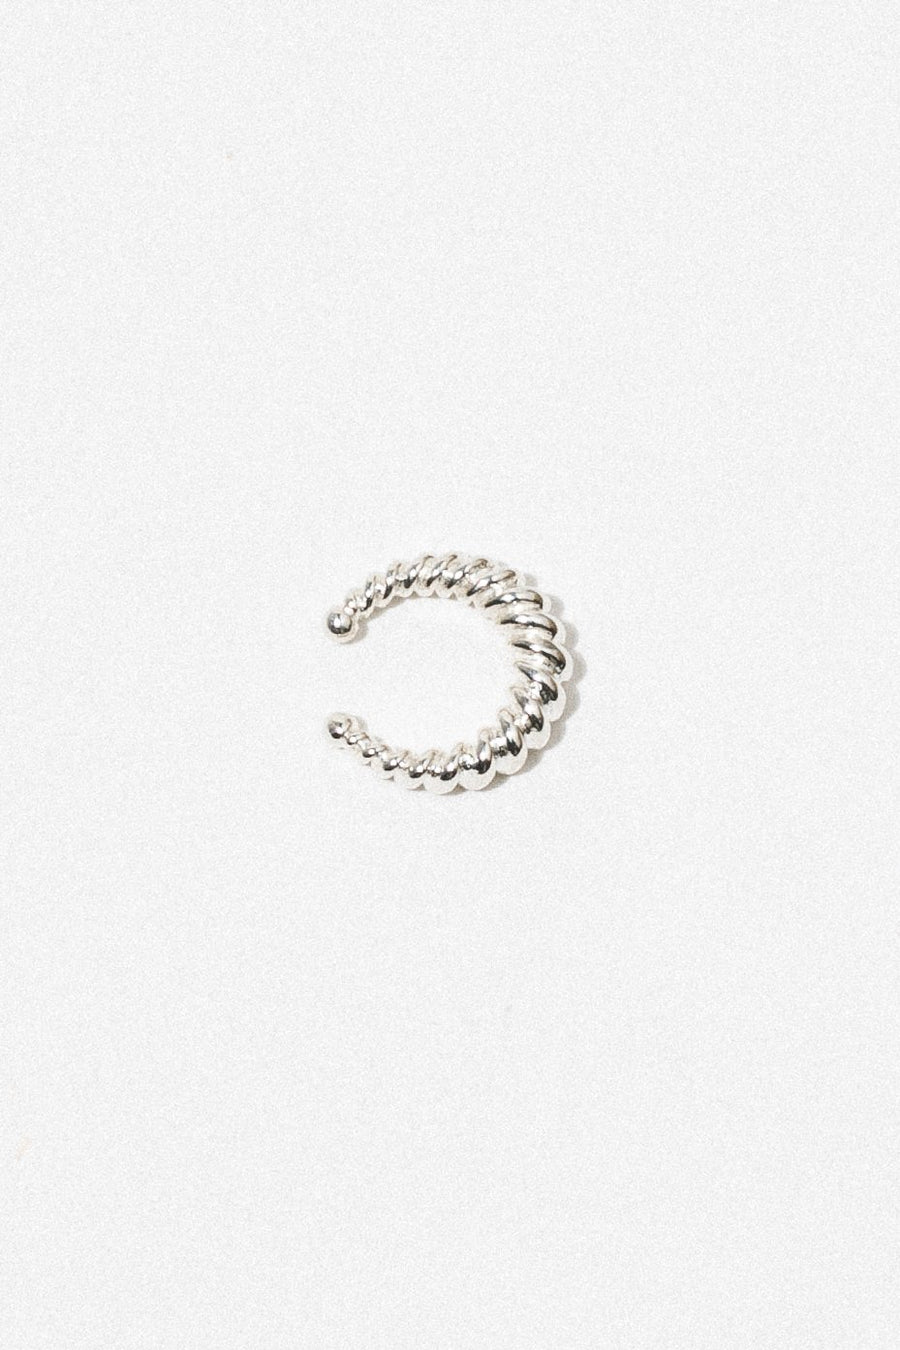 Wildthings Collectables Jewelry Silver Twisted Ear Cuff Silver